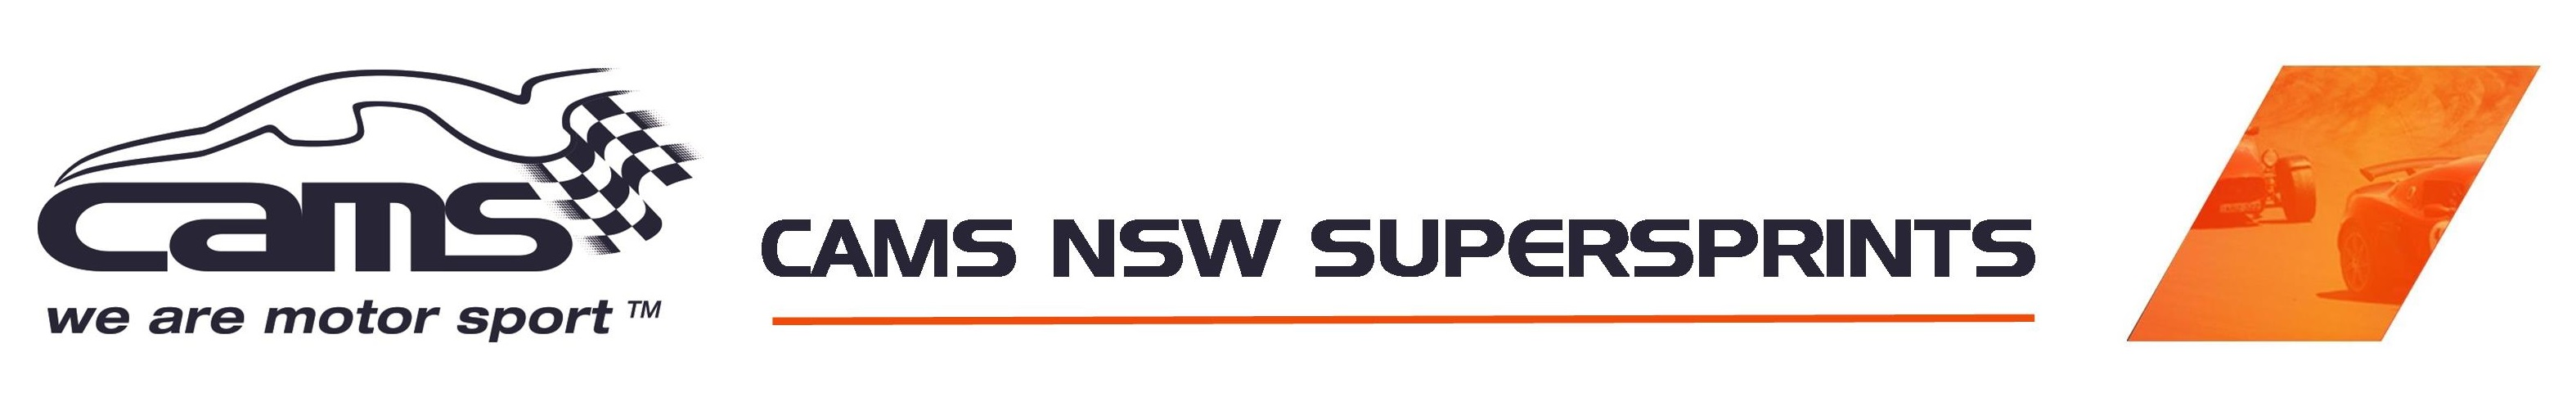 CAMS NSW Supersprints